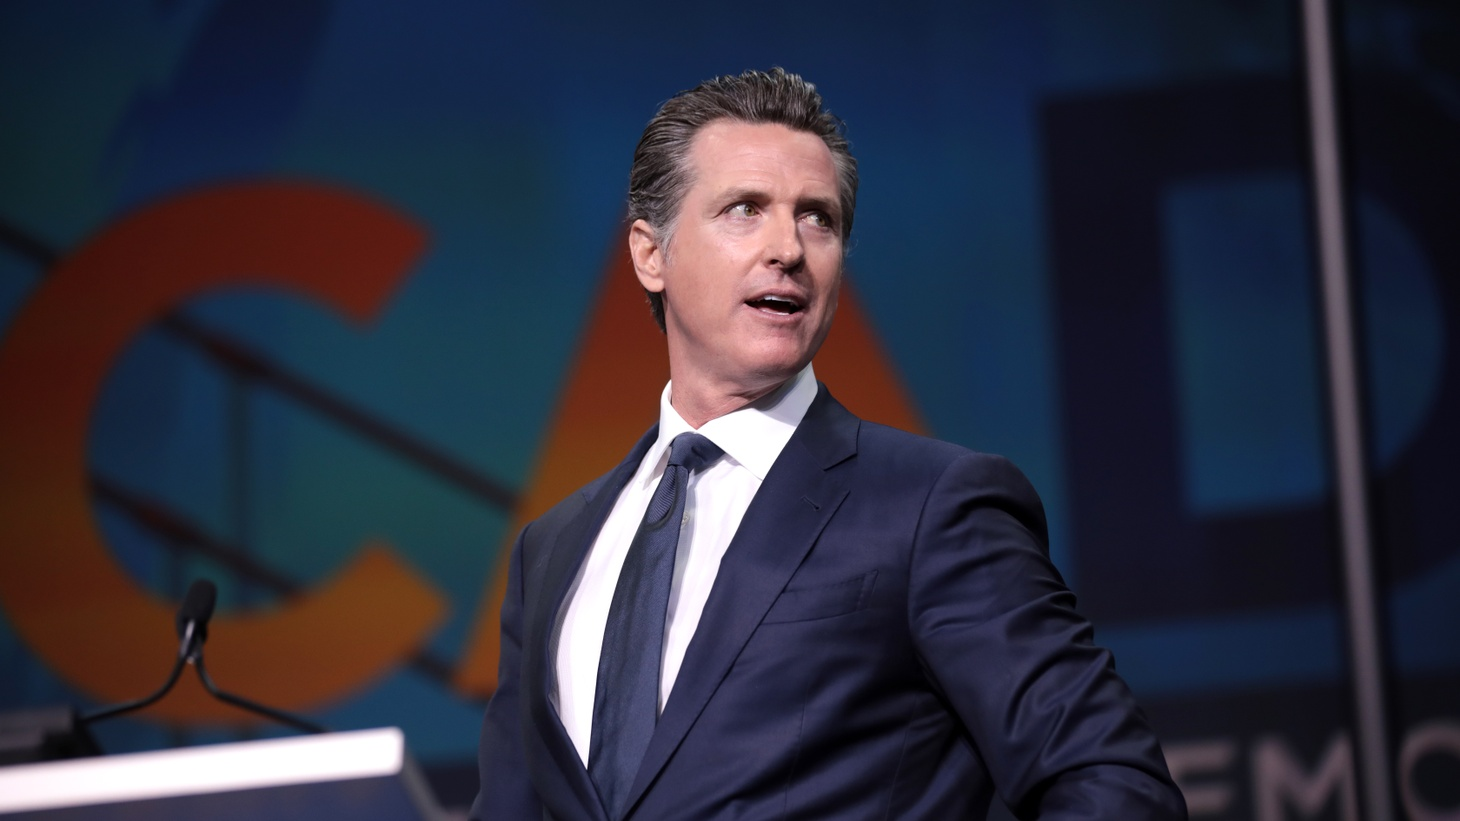 Governor Gavin Newsom speaking at the 2019 California Democratic Party State Convention at the George R. Moscone Convention Center in San Francisco. Newsom is now facing a recall effort that requires 1.5 million signatures by mid-March.